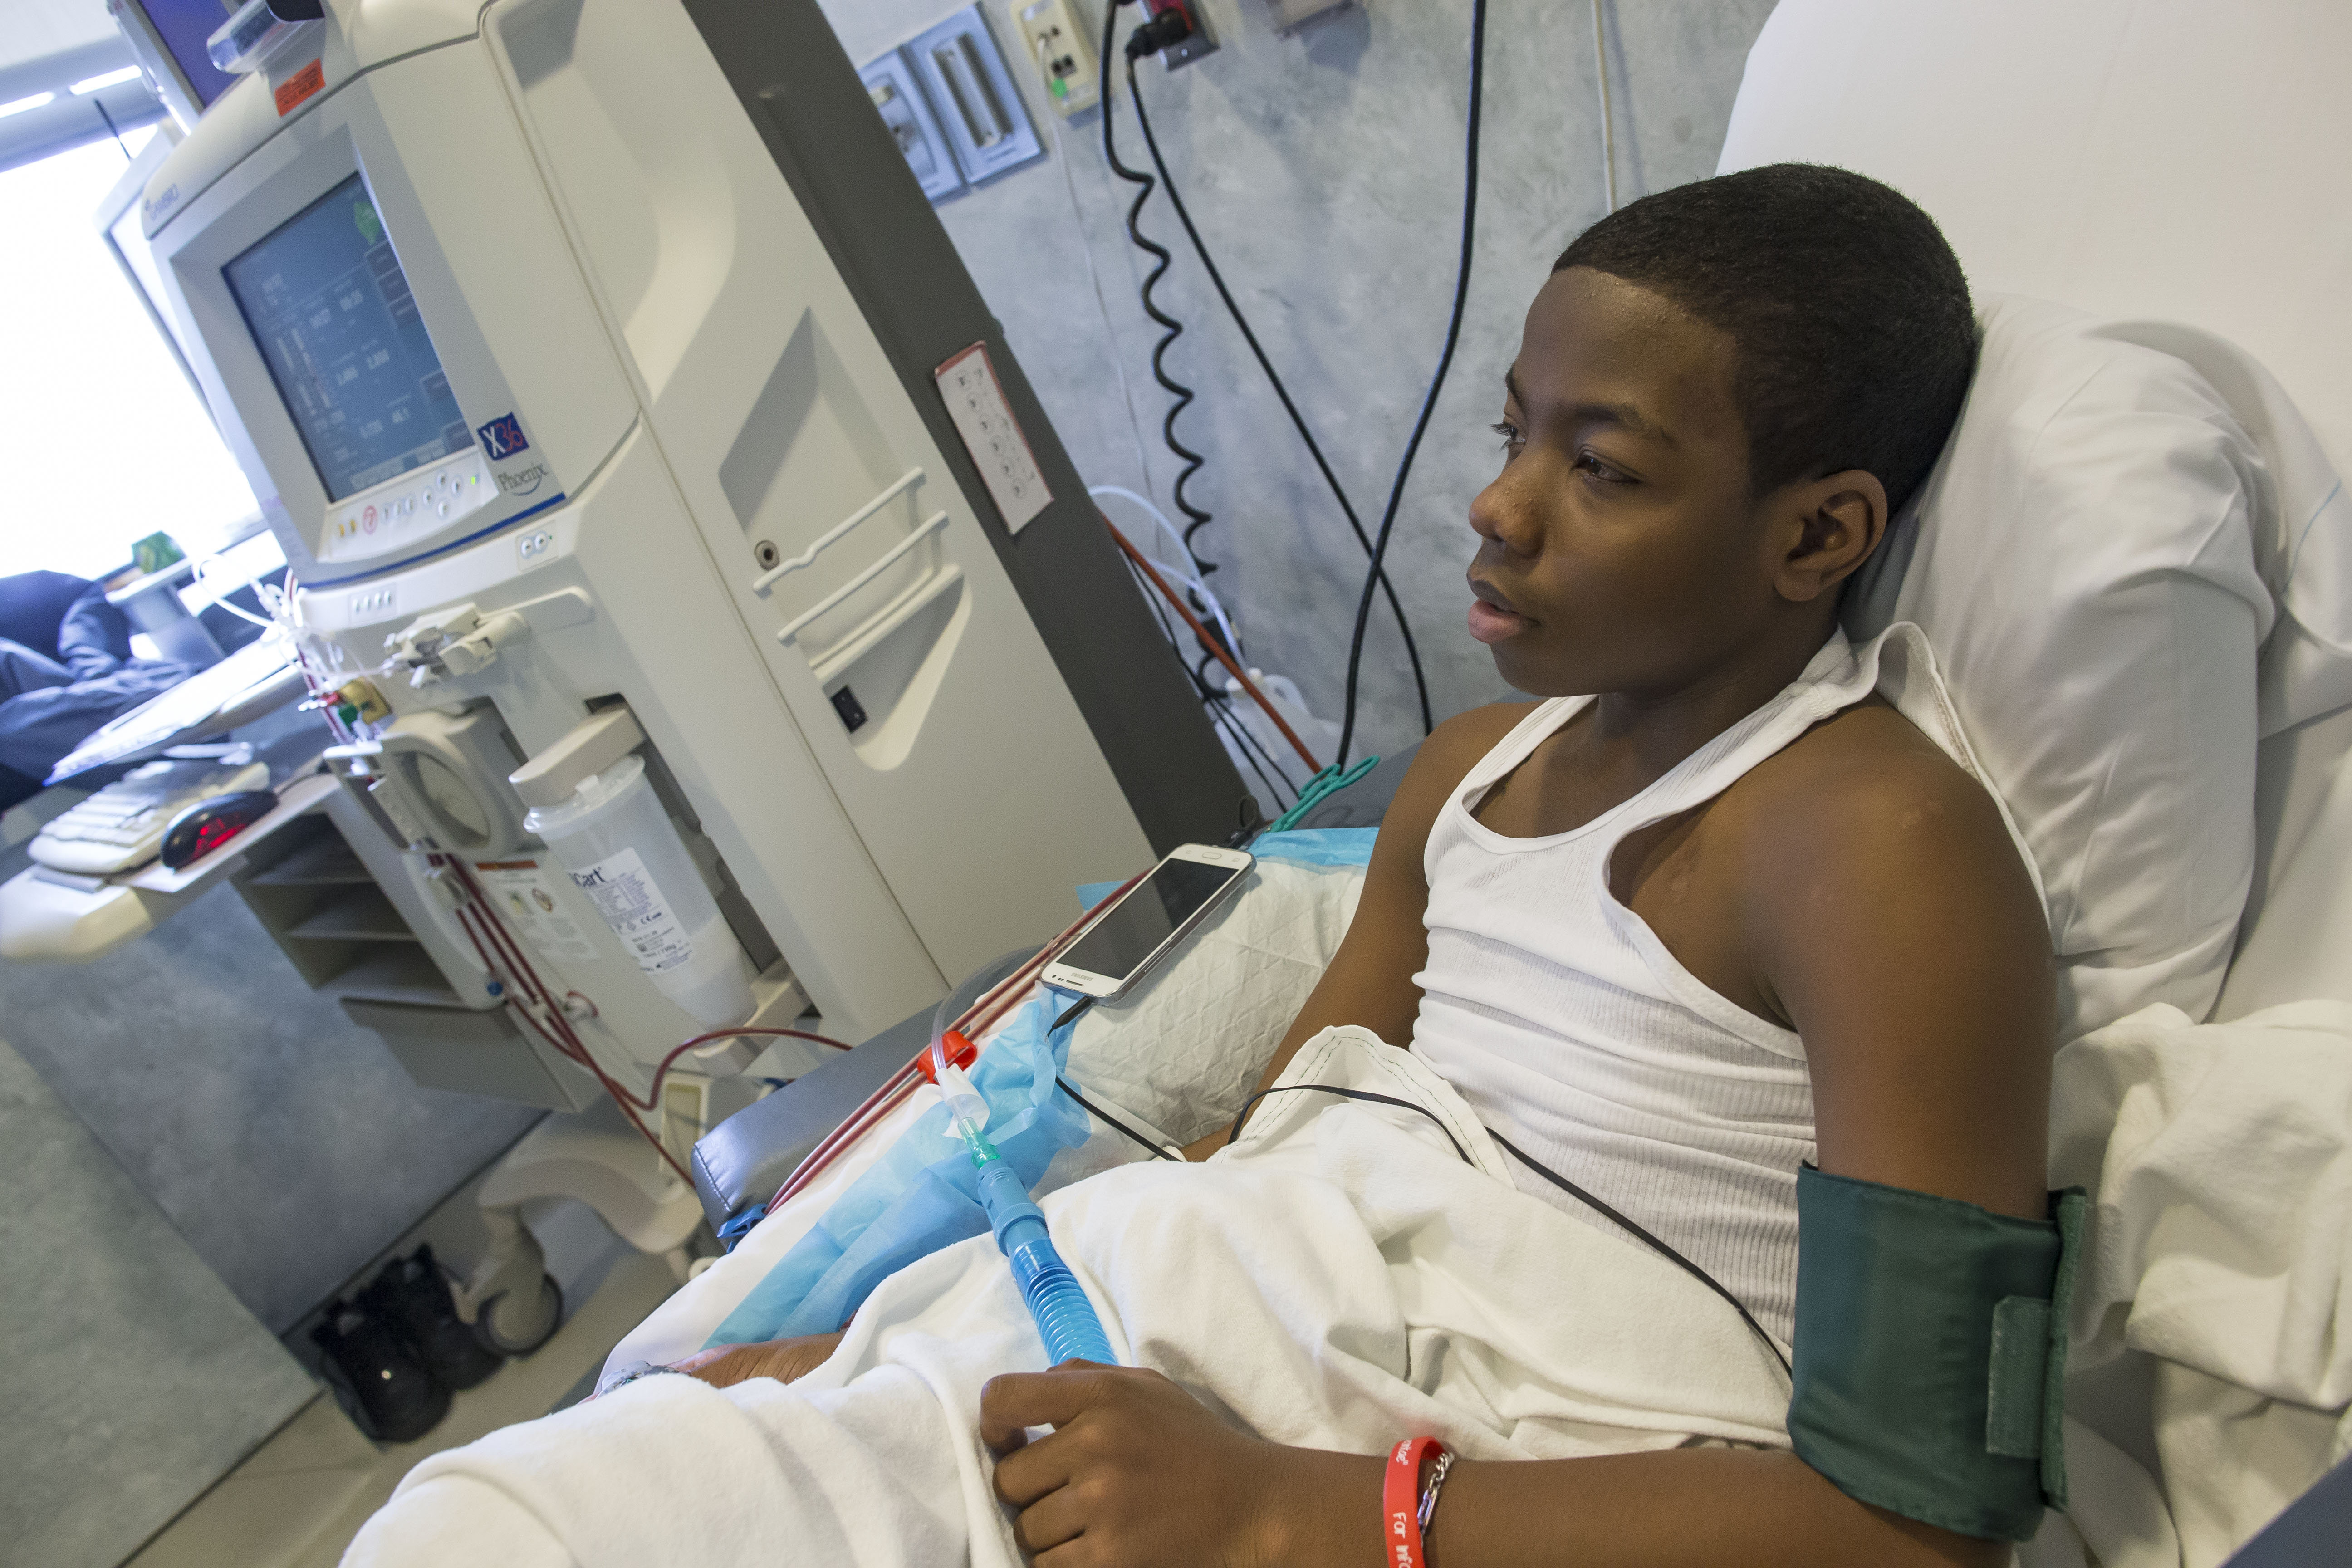 Leontae Parker, 15, goes through dialysis in the Kidney Center at Women and Children's Hospital in Buffalo on April 5. (Derek Gee/Buffalo News)